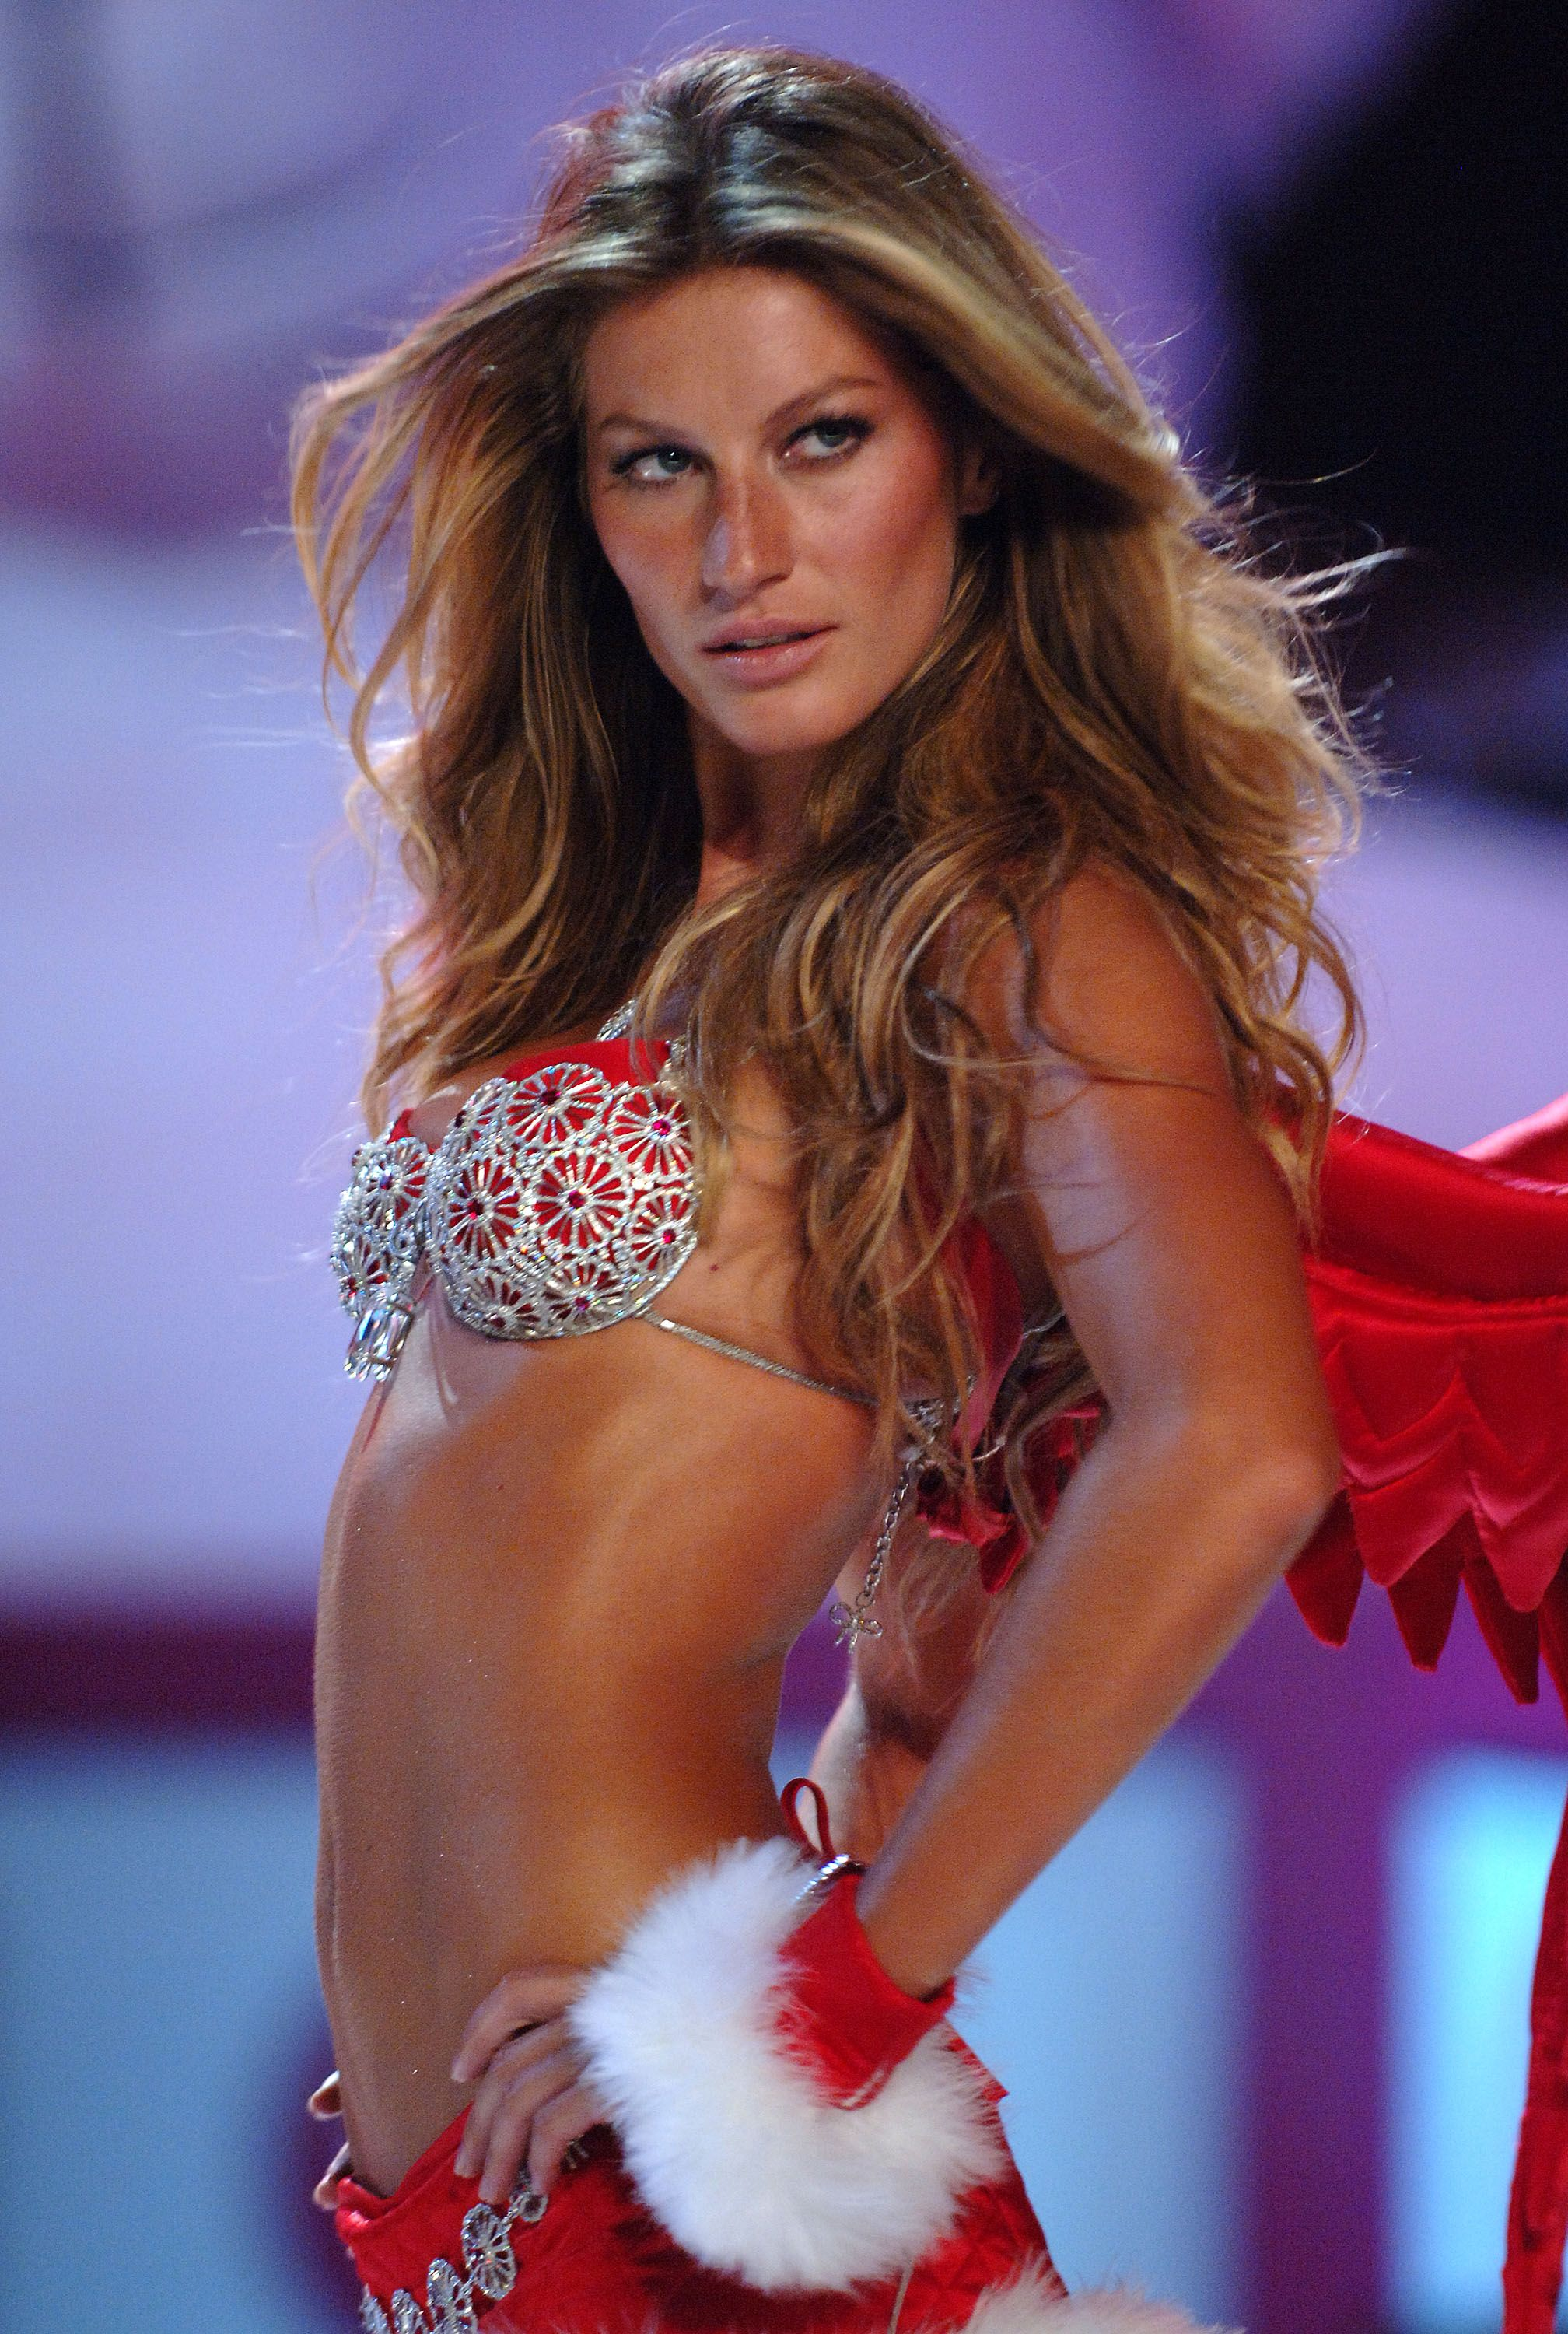 The Real Reason Why Gisele Bündchen Stopped Modeling for Victoria's Secret